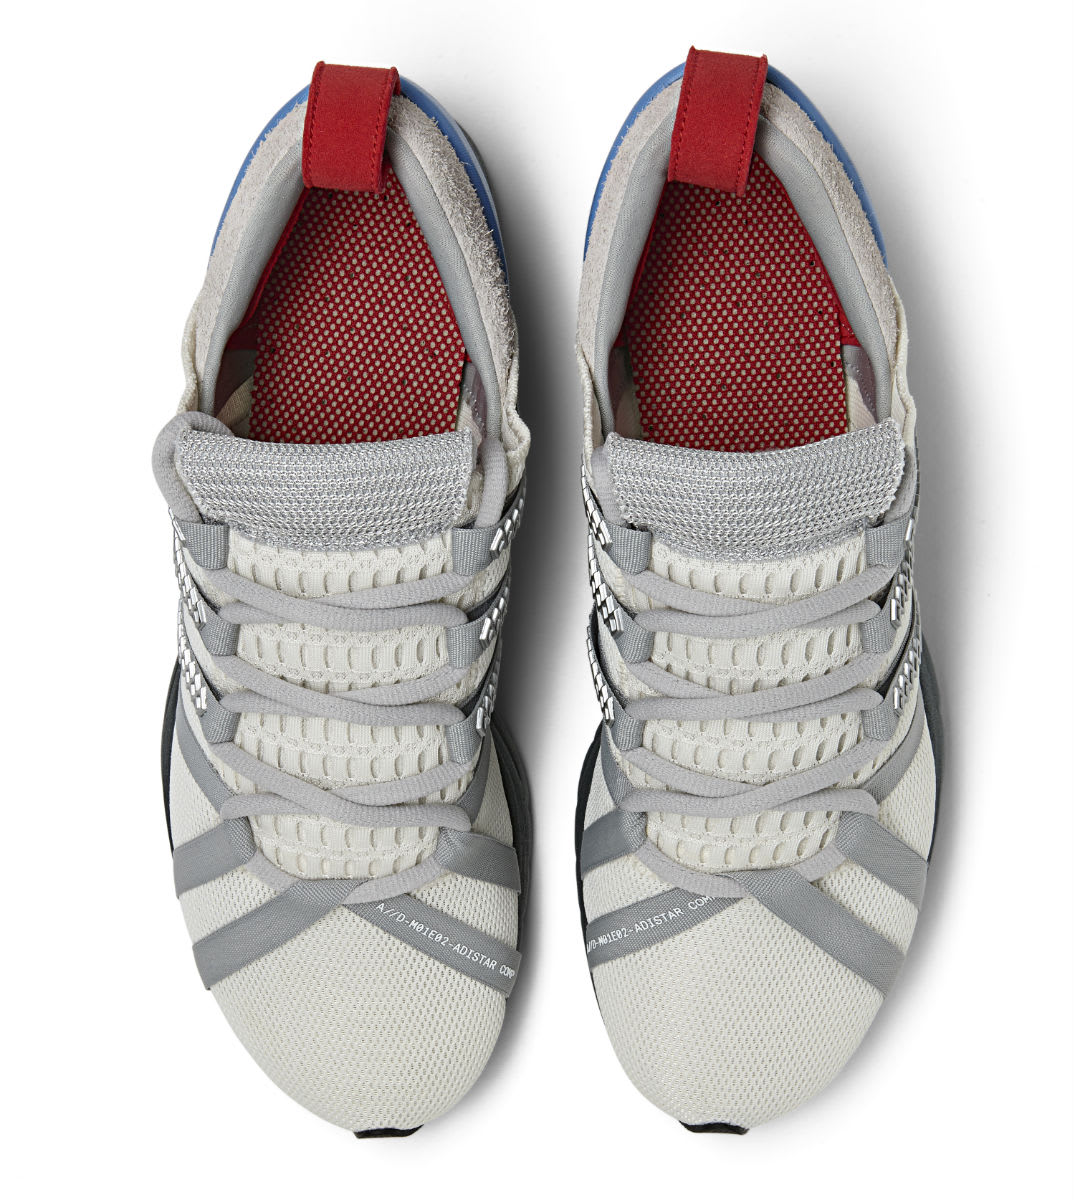 Adidas AdiStar Comp A//D Release Date Top BY9836